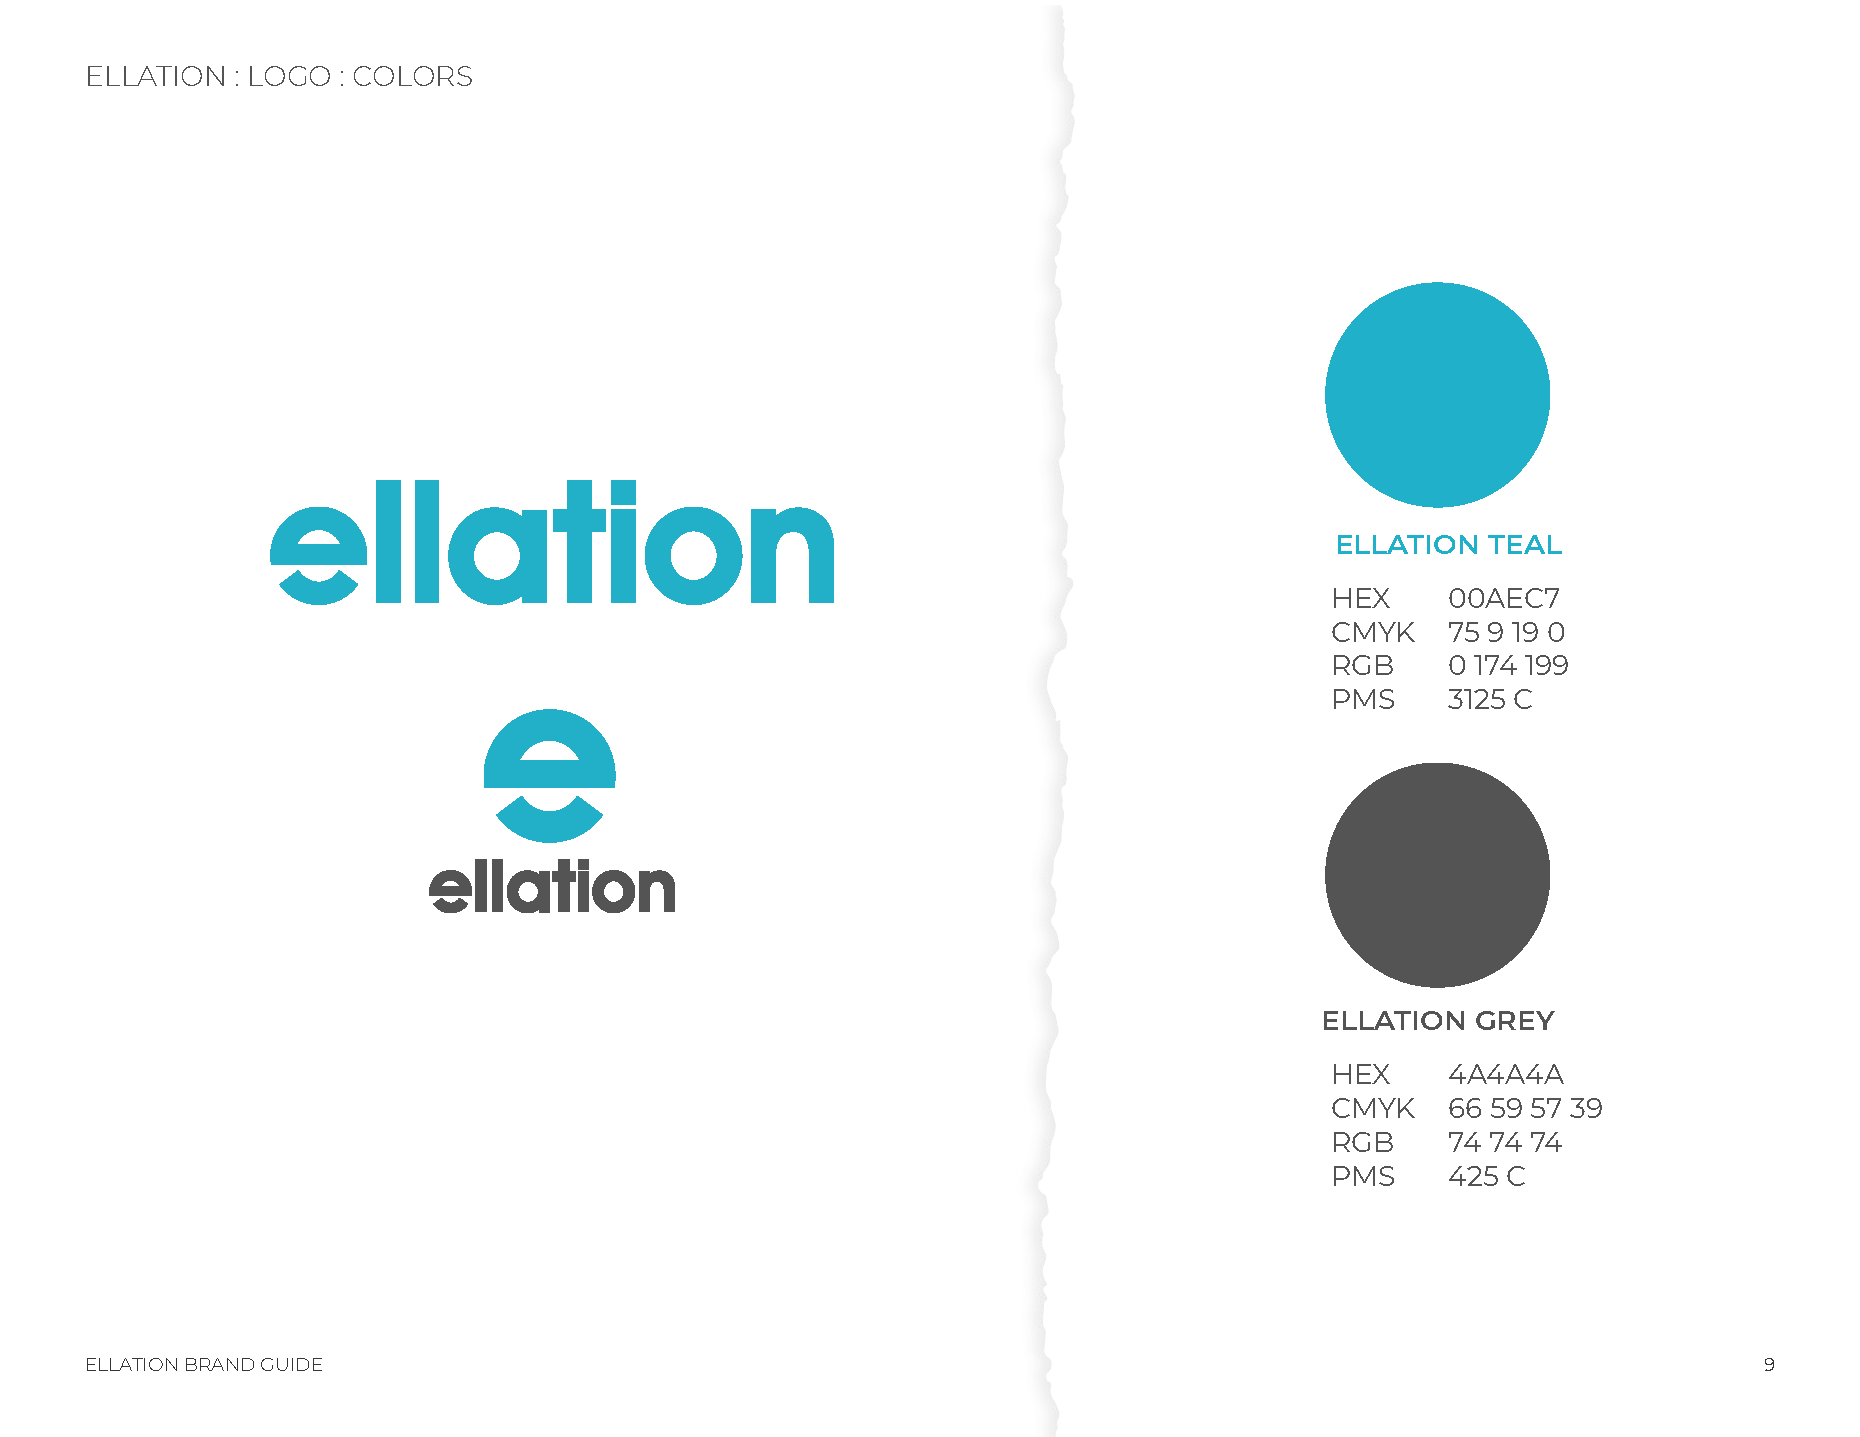 Ellation-Style Guide_Page_10.png